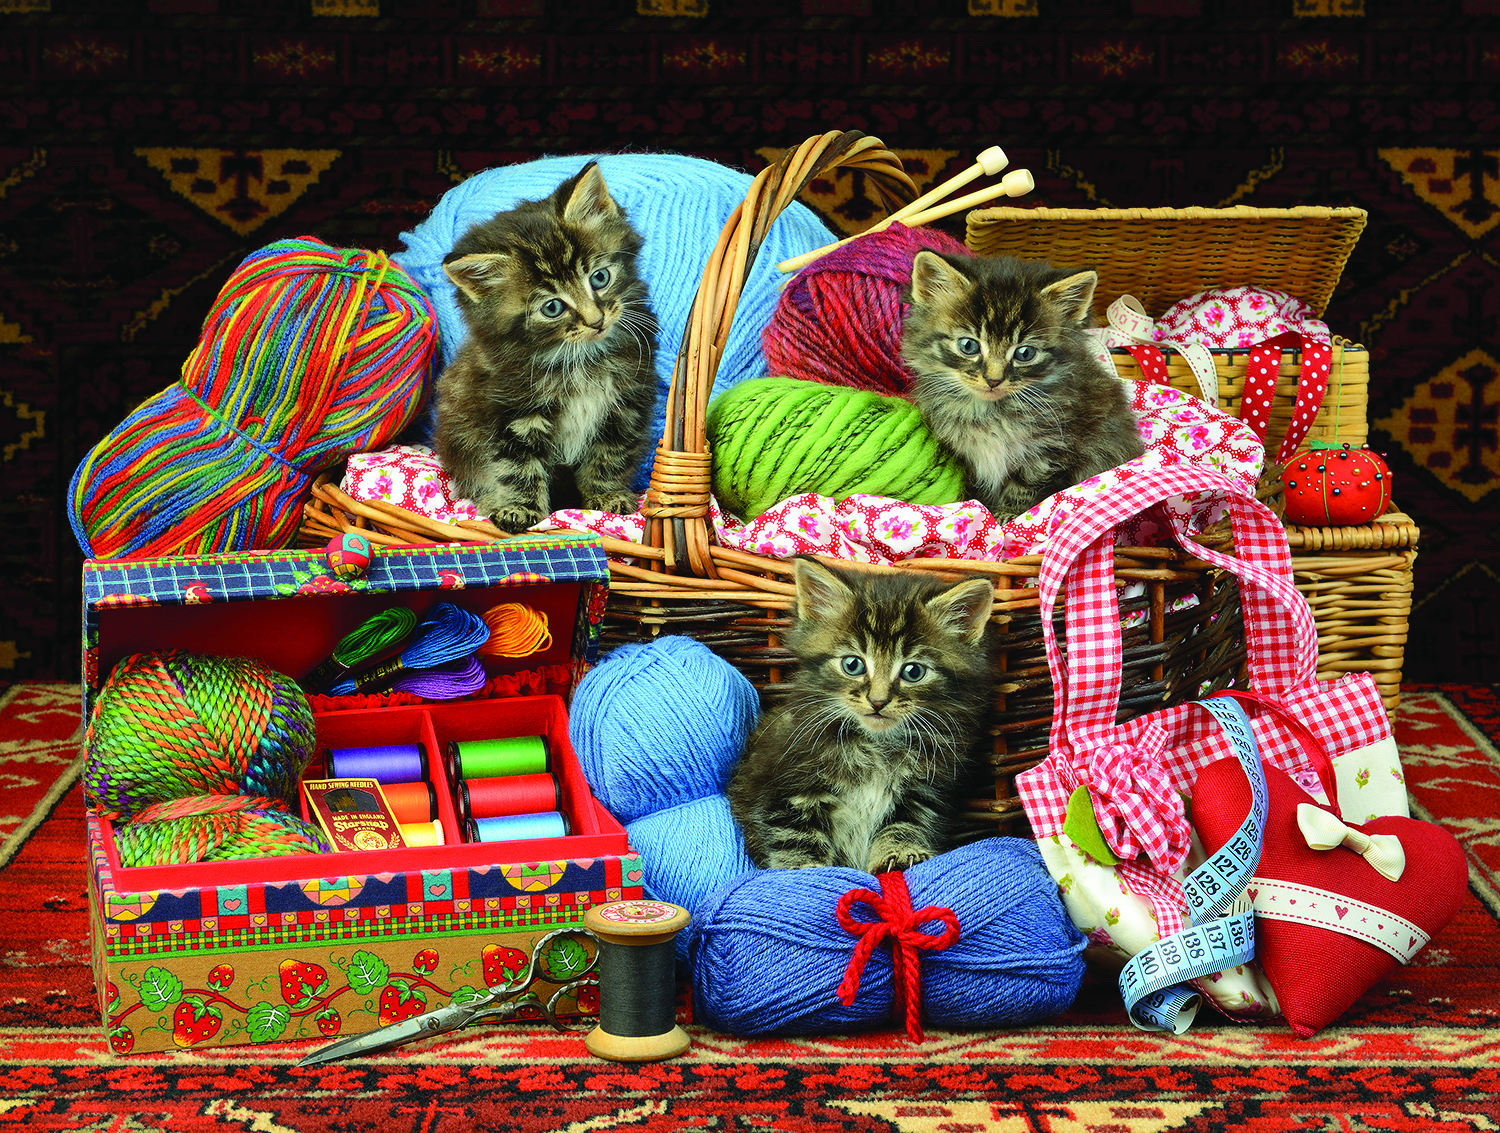 Kittens in the Basket 500 Pc Jigsaw Puzzle by SunsOut Inc.